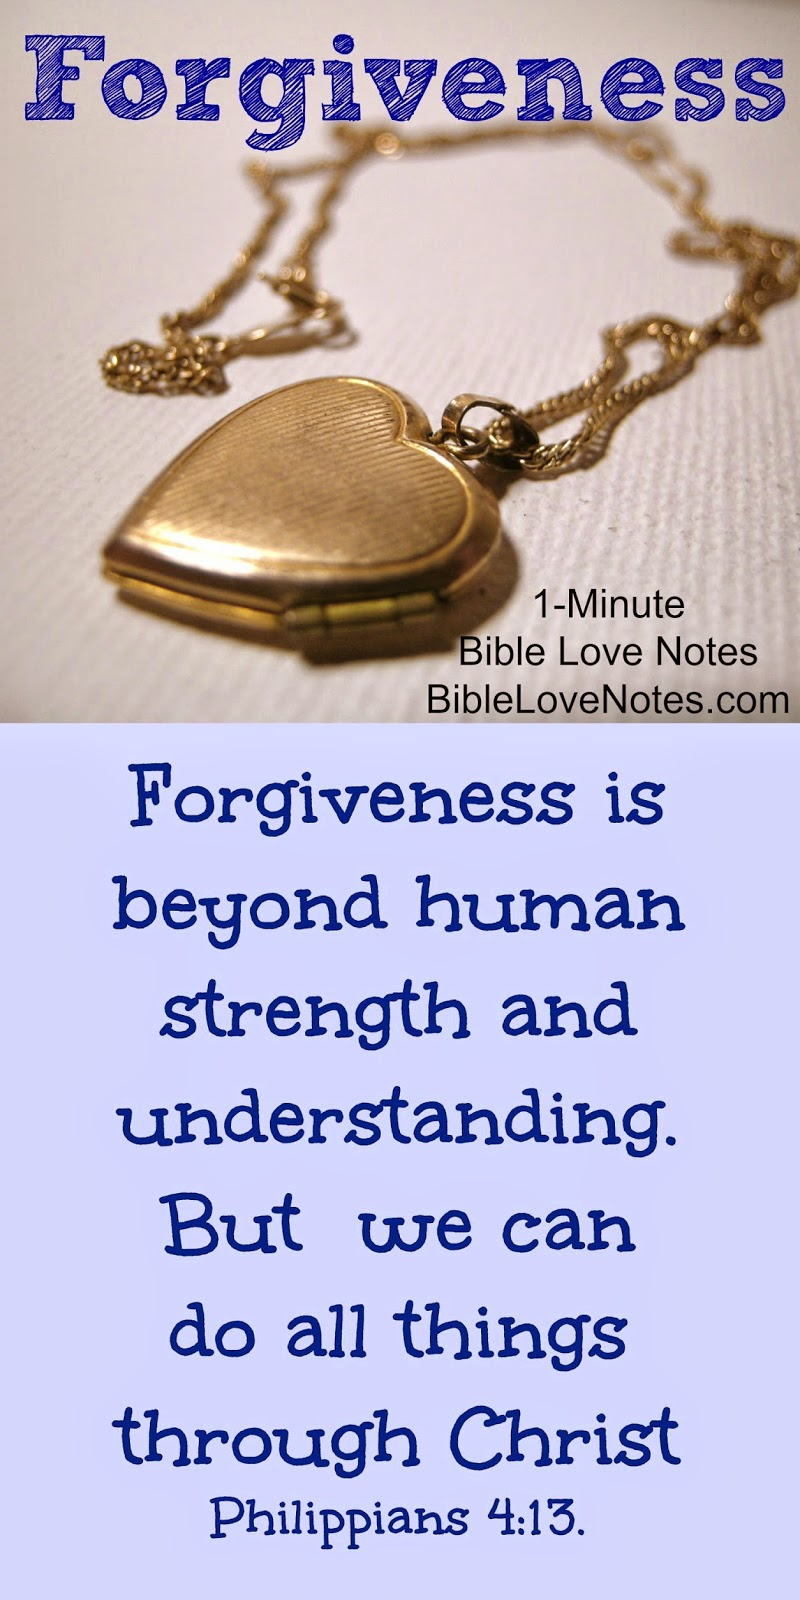 Forgiveness, Marietta Jaeger's daughter kidnapped and killed, Romans12:17-21